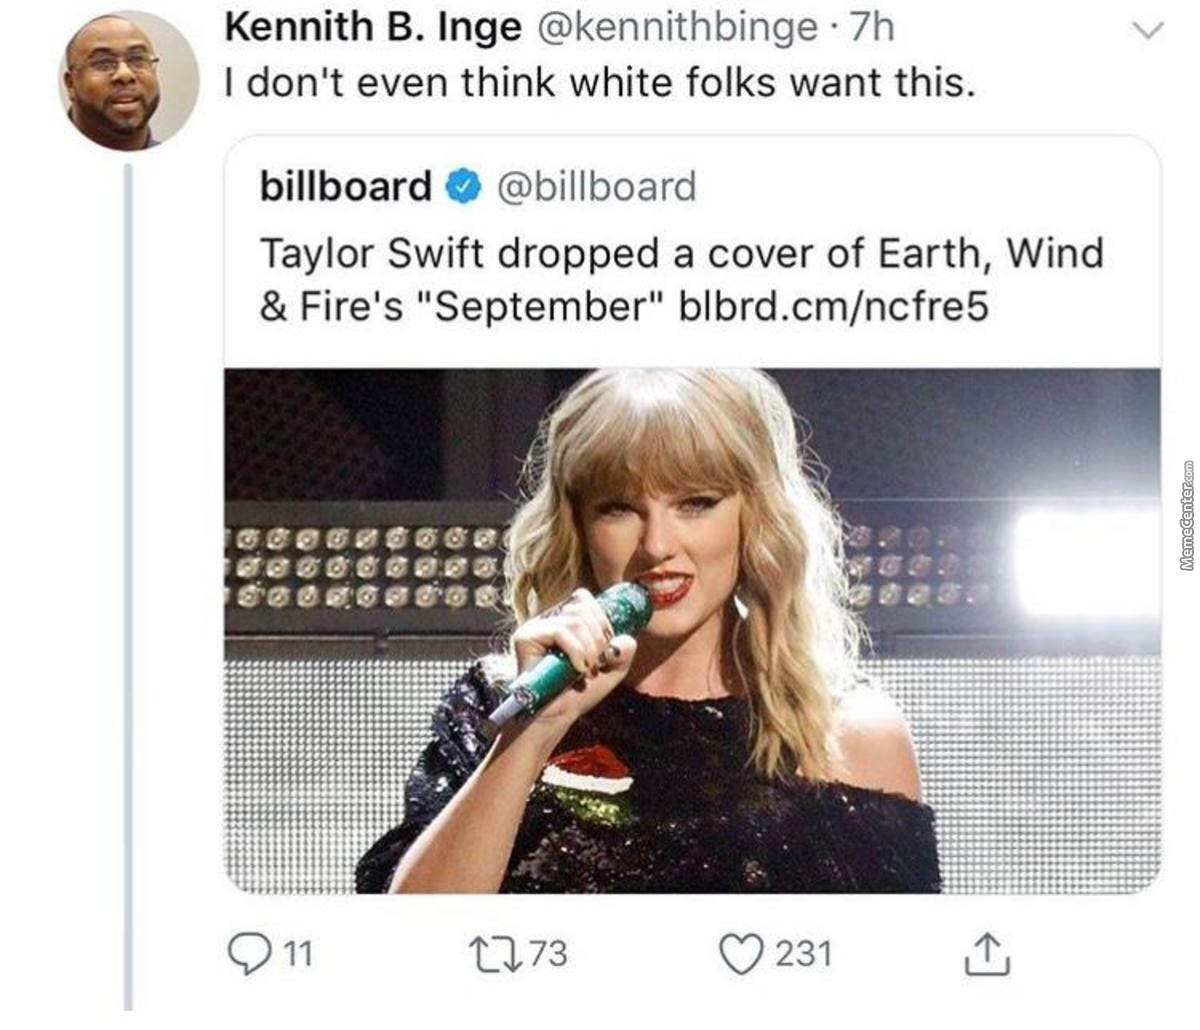 The Original Up Beat Energy Of The Original September Isn't There, Its Just Bland